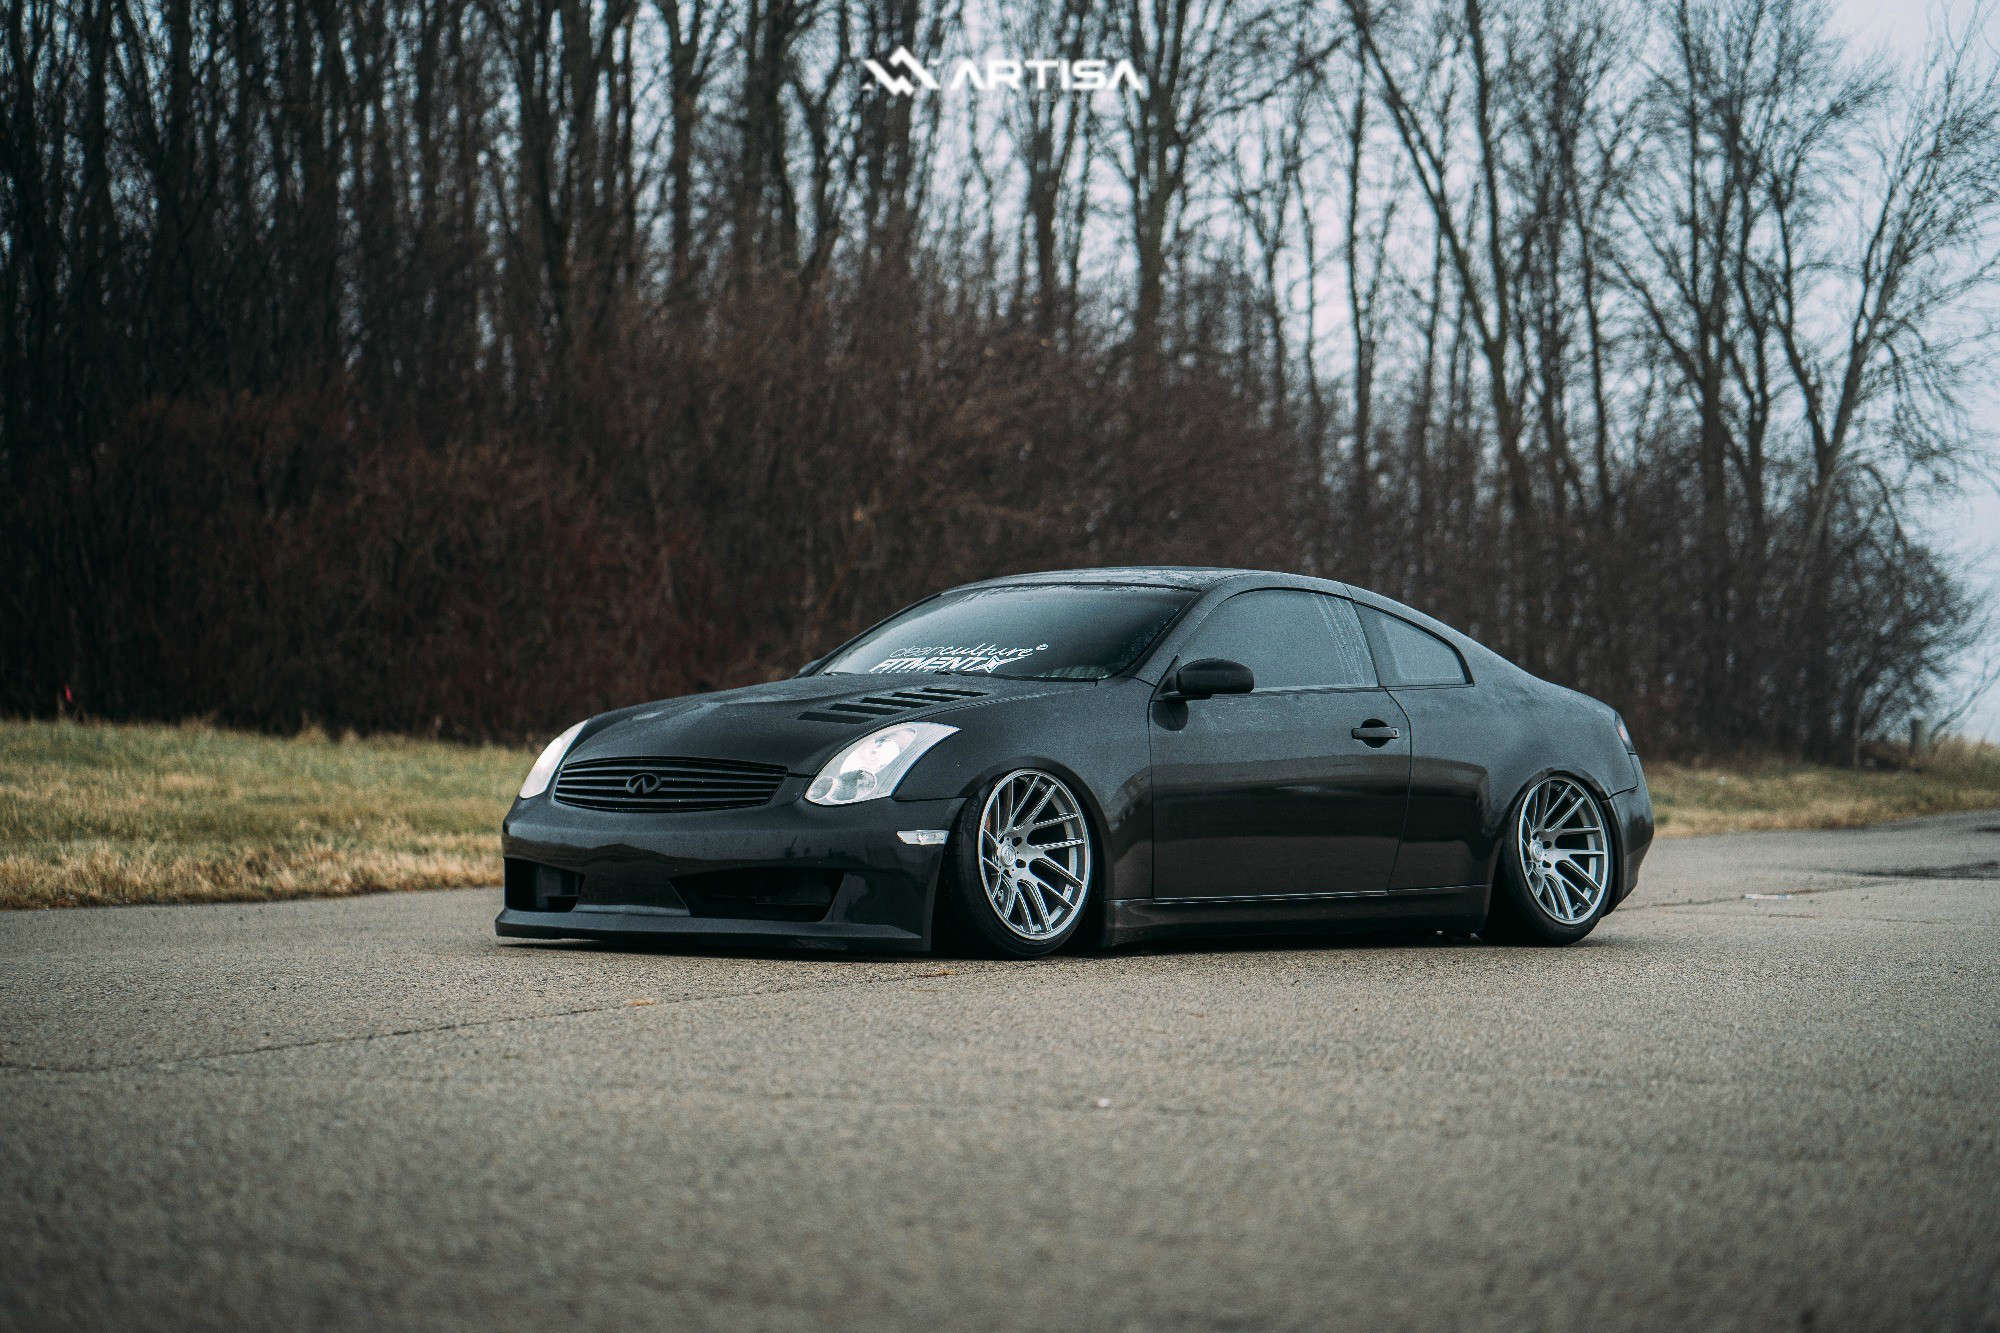 2 2004 G35 Infiniti Rwd 2dr Coupe W Leather 35l 6cyl 6m Air Lift Performance Air Suspension Artisa Elder Silver